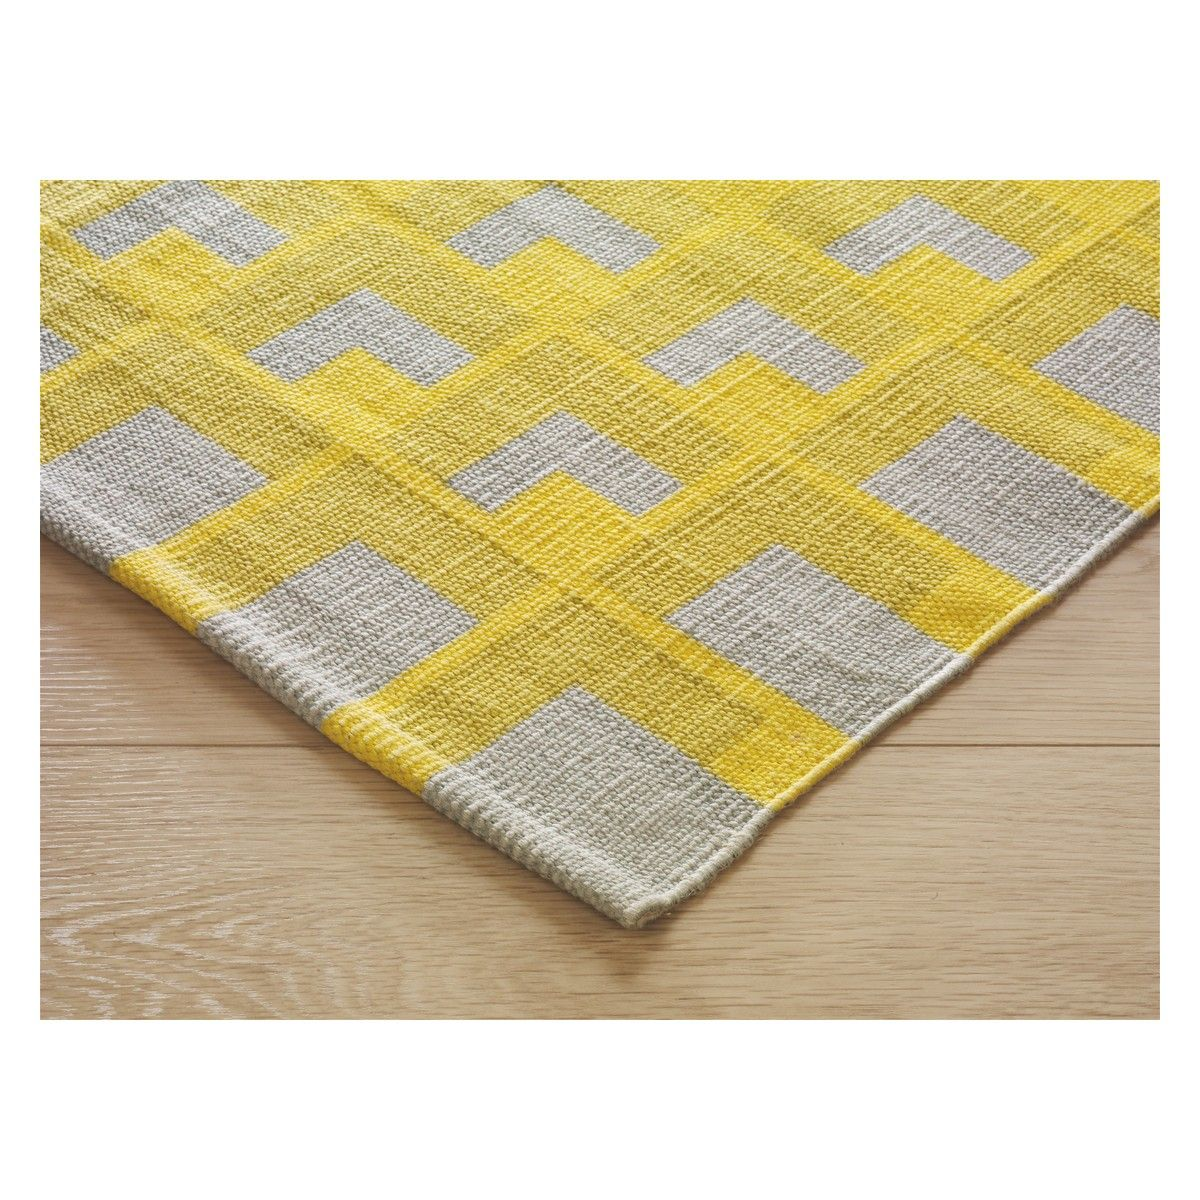 Chroma Medium Yellow And Grey Cotton Rug 140 X 200cm Now At Habitat Uk